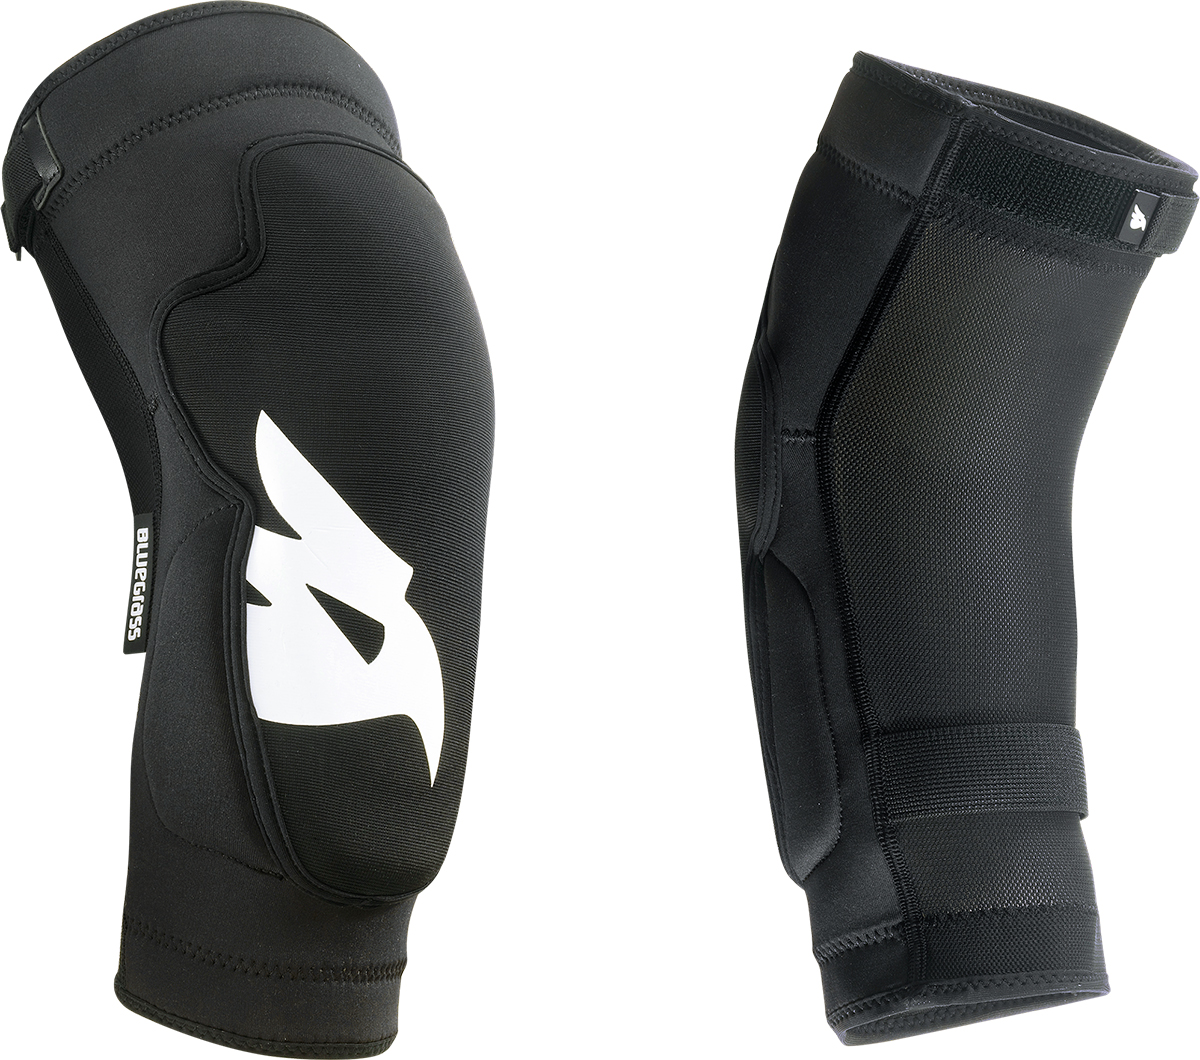 Bluegrass Solid Knee Guards | Amour